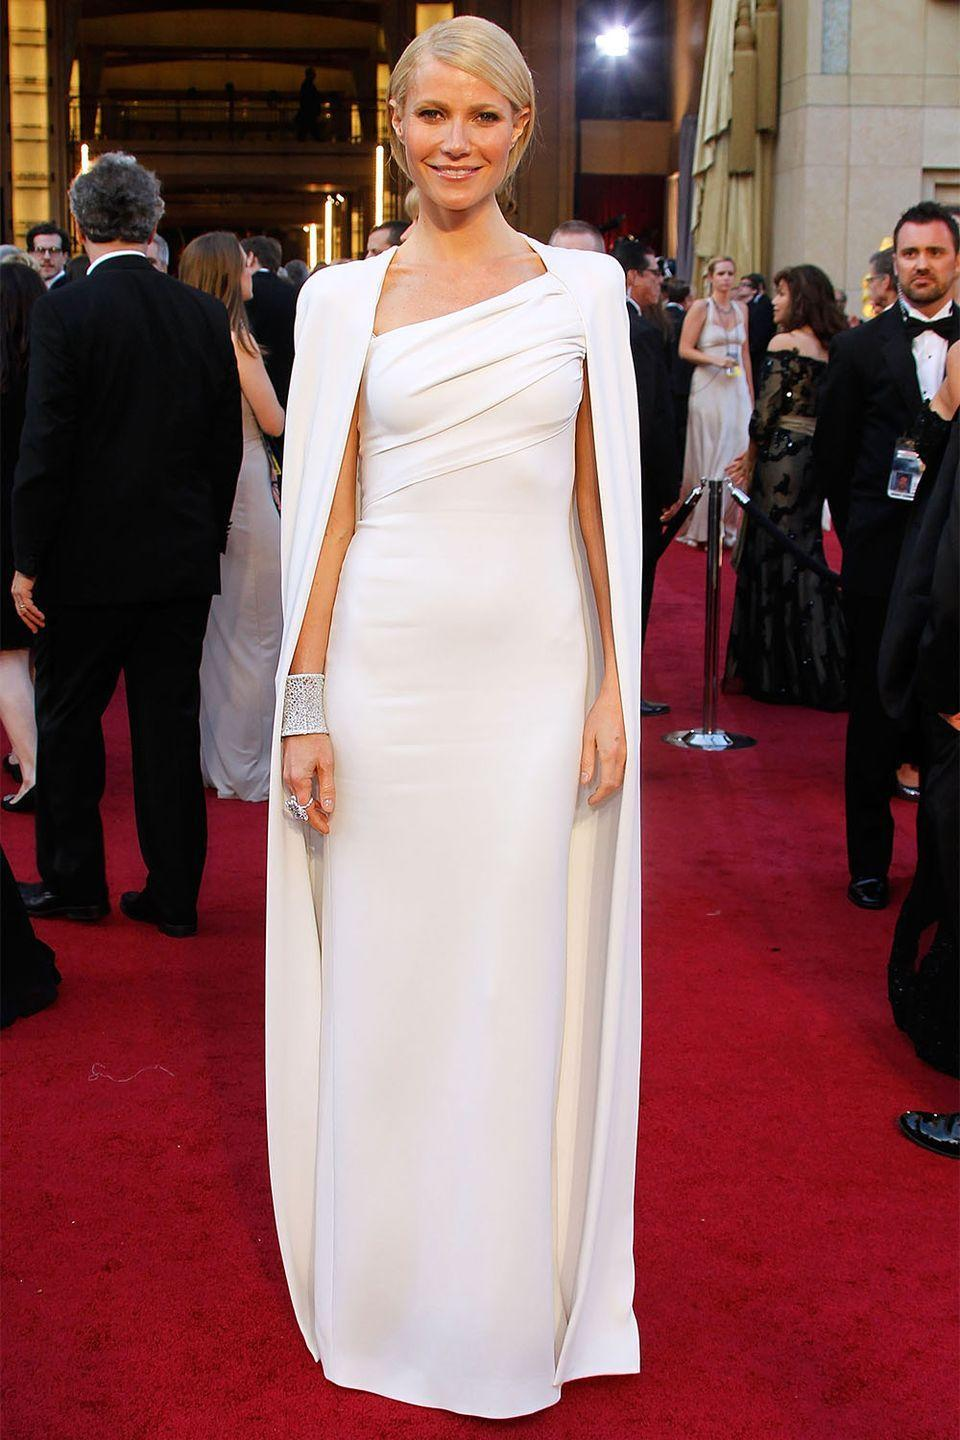 <p>Gwyneth Paltrow pioneered the caped trend at the 2012 Academy Awards in this Tom Ford, which became one of the biggest fashion trends from outerwear to cocktail dresses. </p>